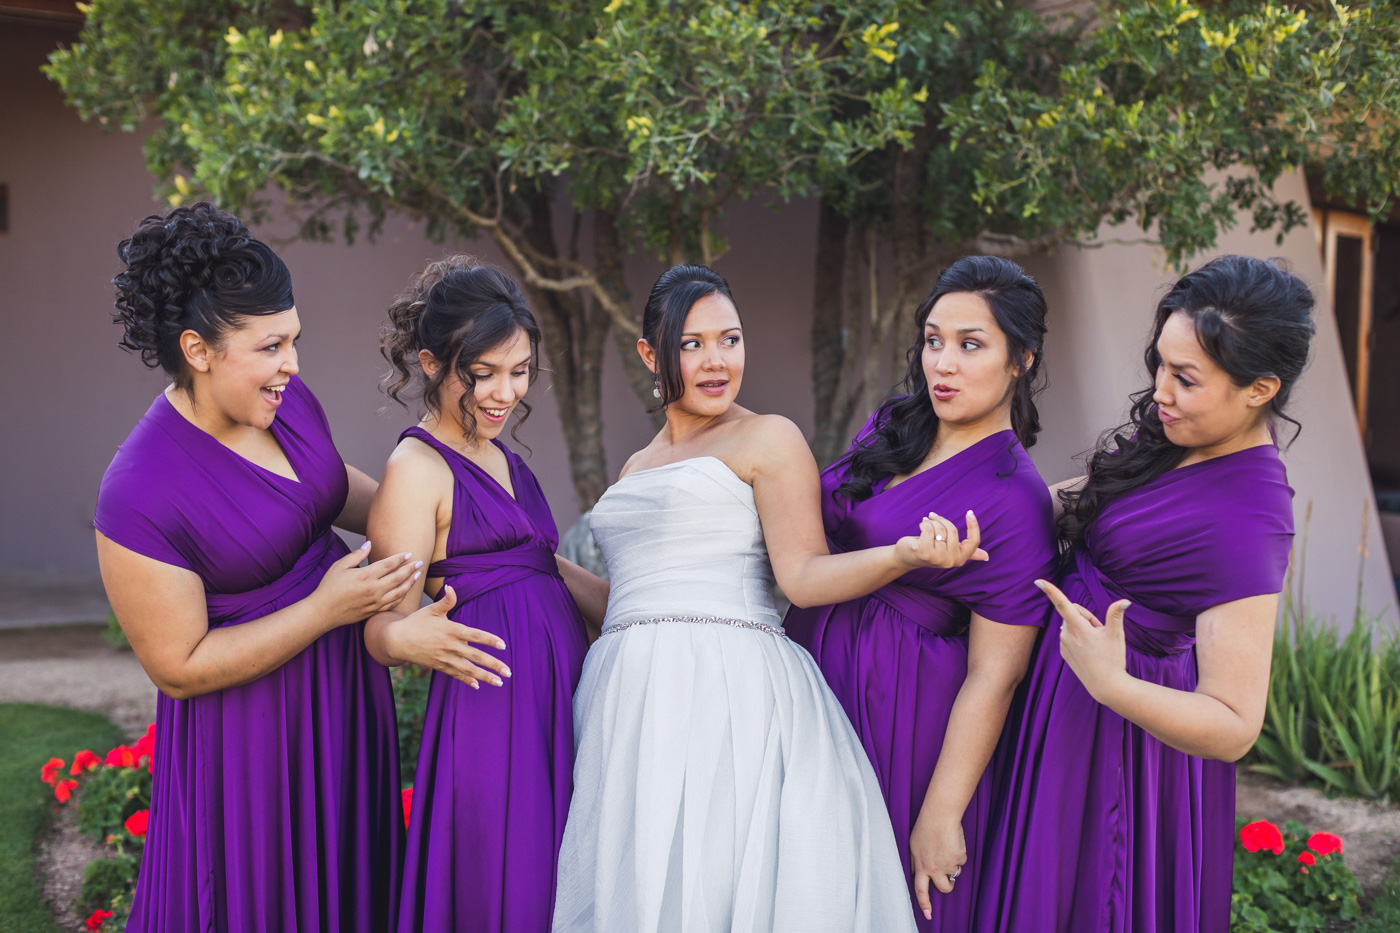 bride-and-bridesmaids-checking-each-other-out